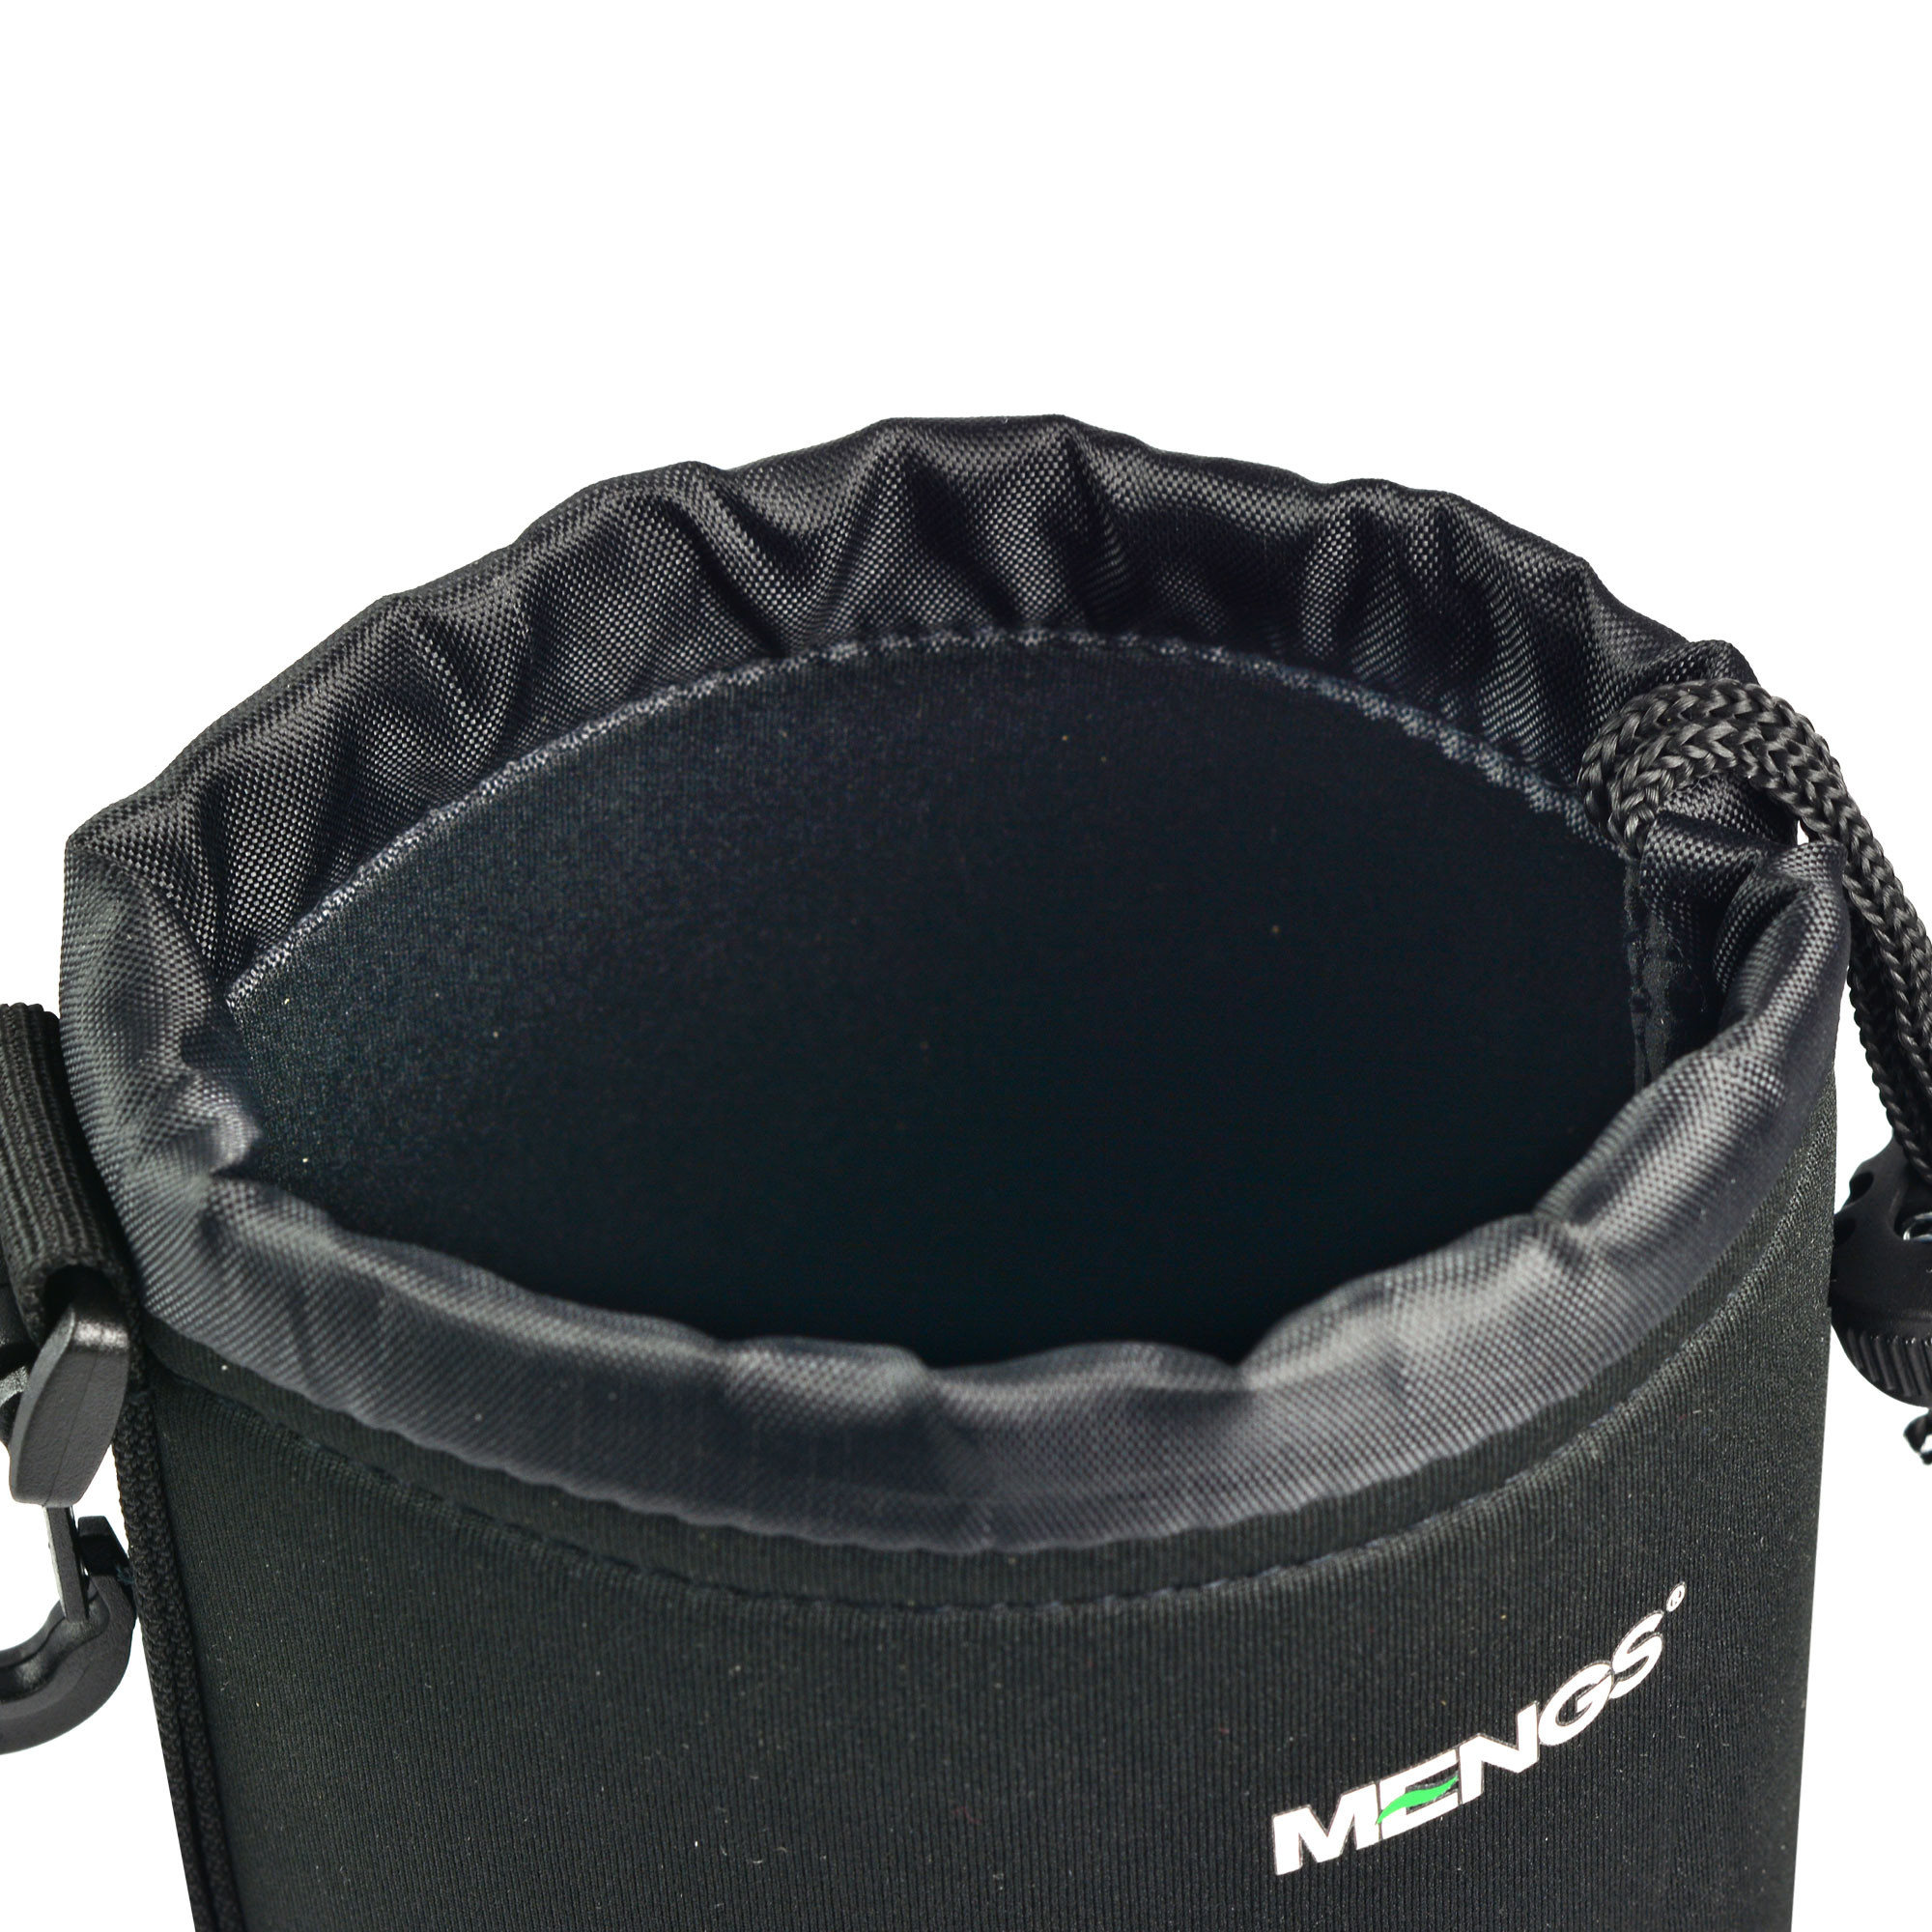 Nikon Olympus 4 Sizes Multi Pack S, M, L /& XL Tokina Lenses Panasonic MENGS High Grade Protective Neoprene Lens Pouch For Canon Tamron Samsung Pentax Leica Sigma Sony Hook And Belt Loop